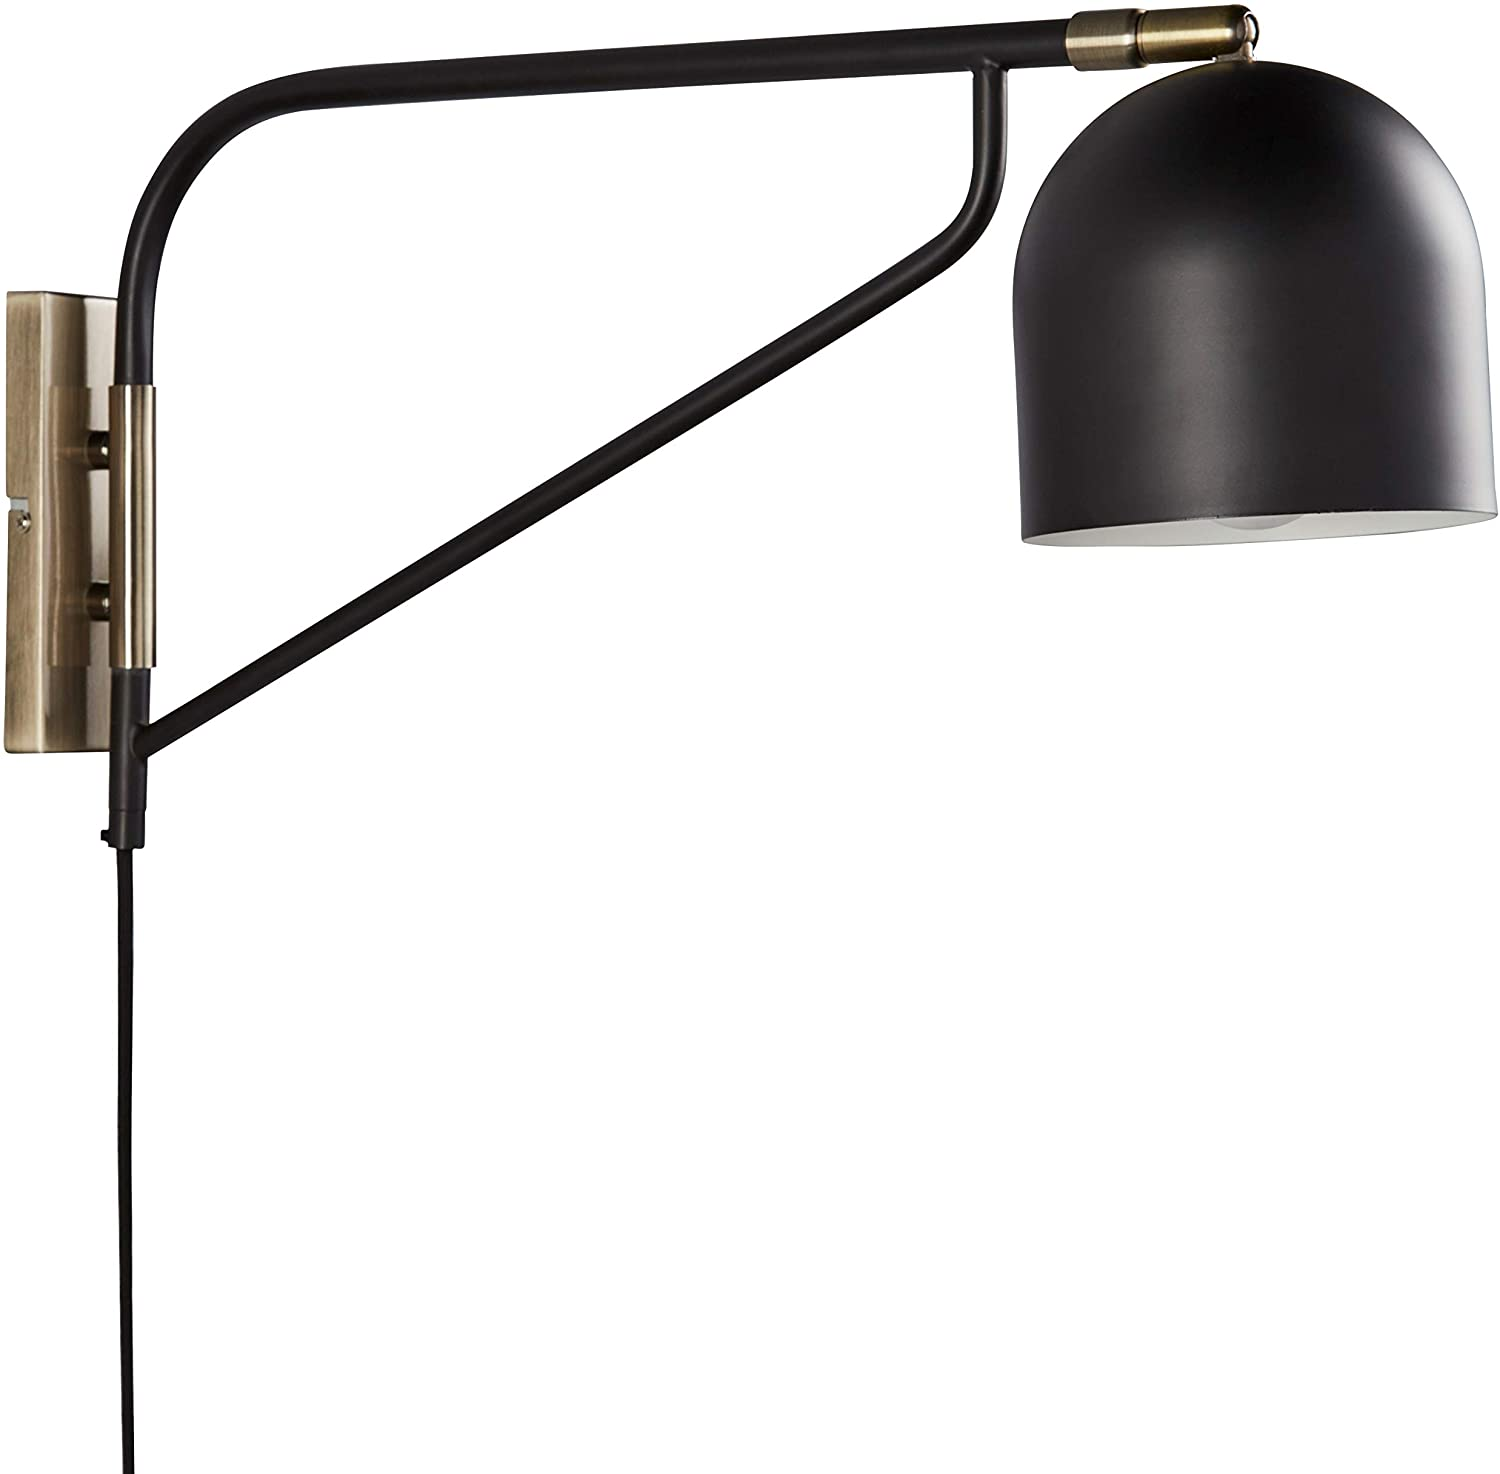 "Rivet Mid-Century Swiveling Wall Sconce with Bulb, 11""H, Black and Antique Brass"